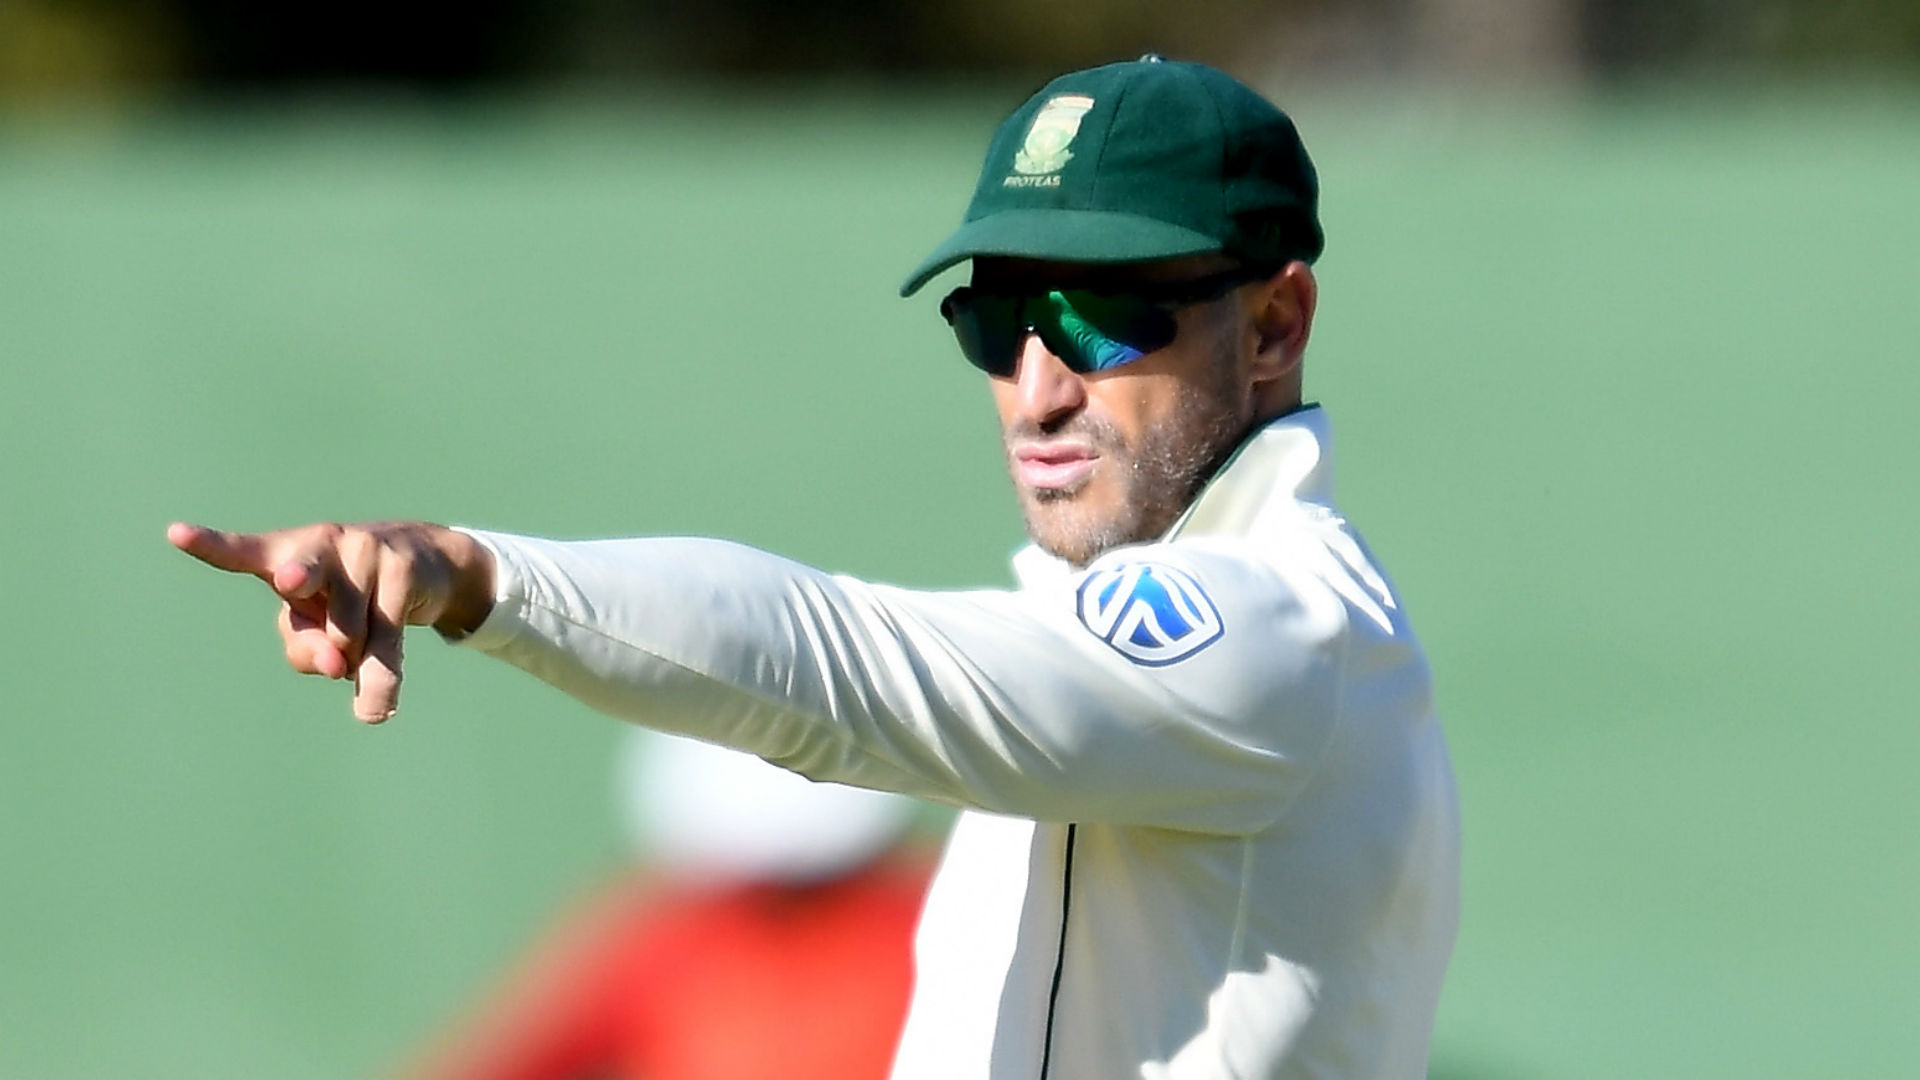 Du Plessis calls for focus on cricket amid CSA off-field problems